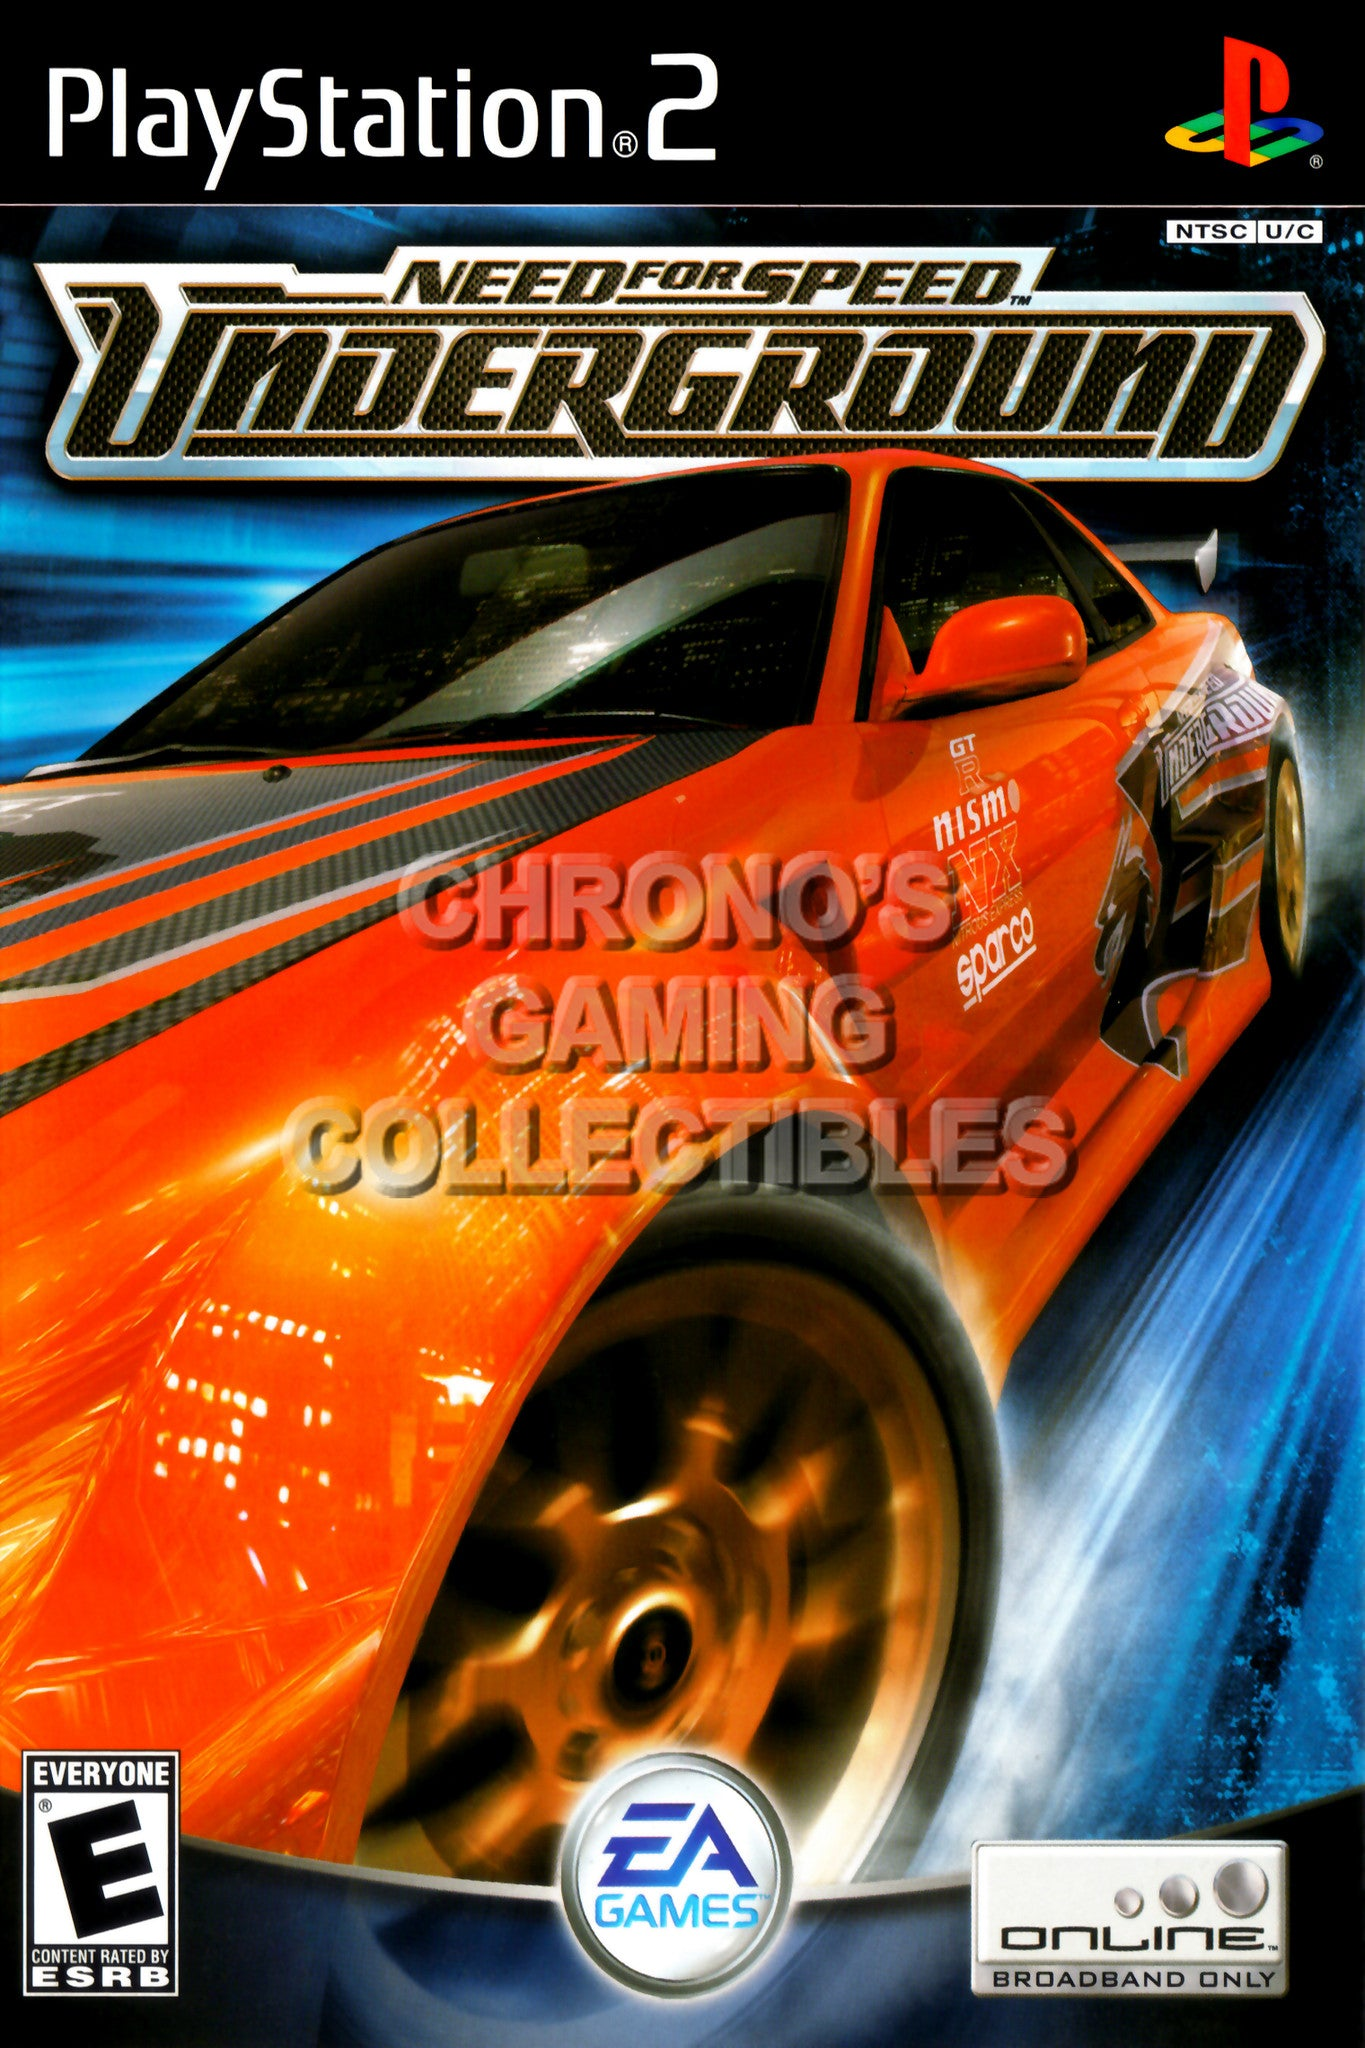 CGC Huge Poster - Need for Speed Underground - BOX ART Sony Plastation 2  PS2 - PS2227